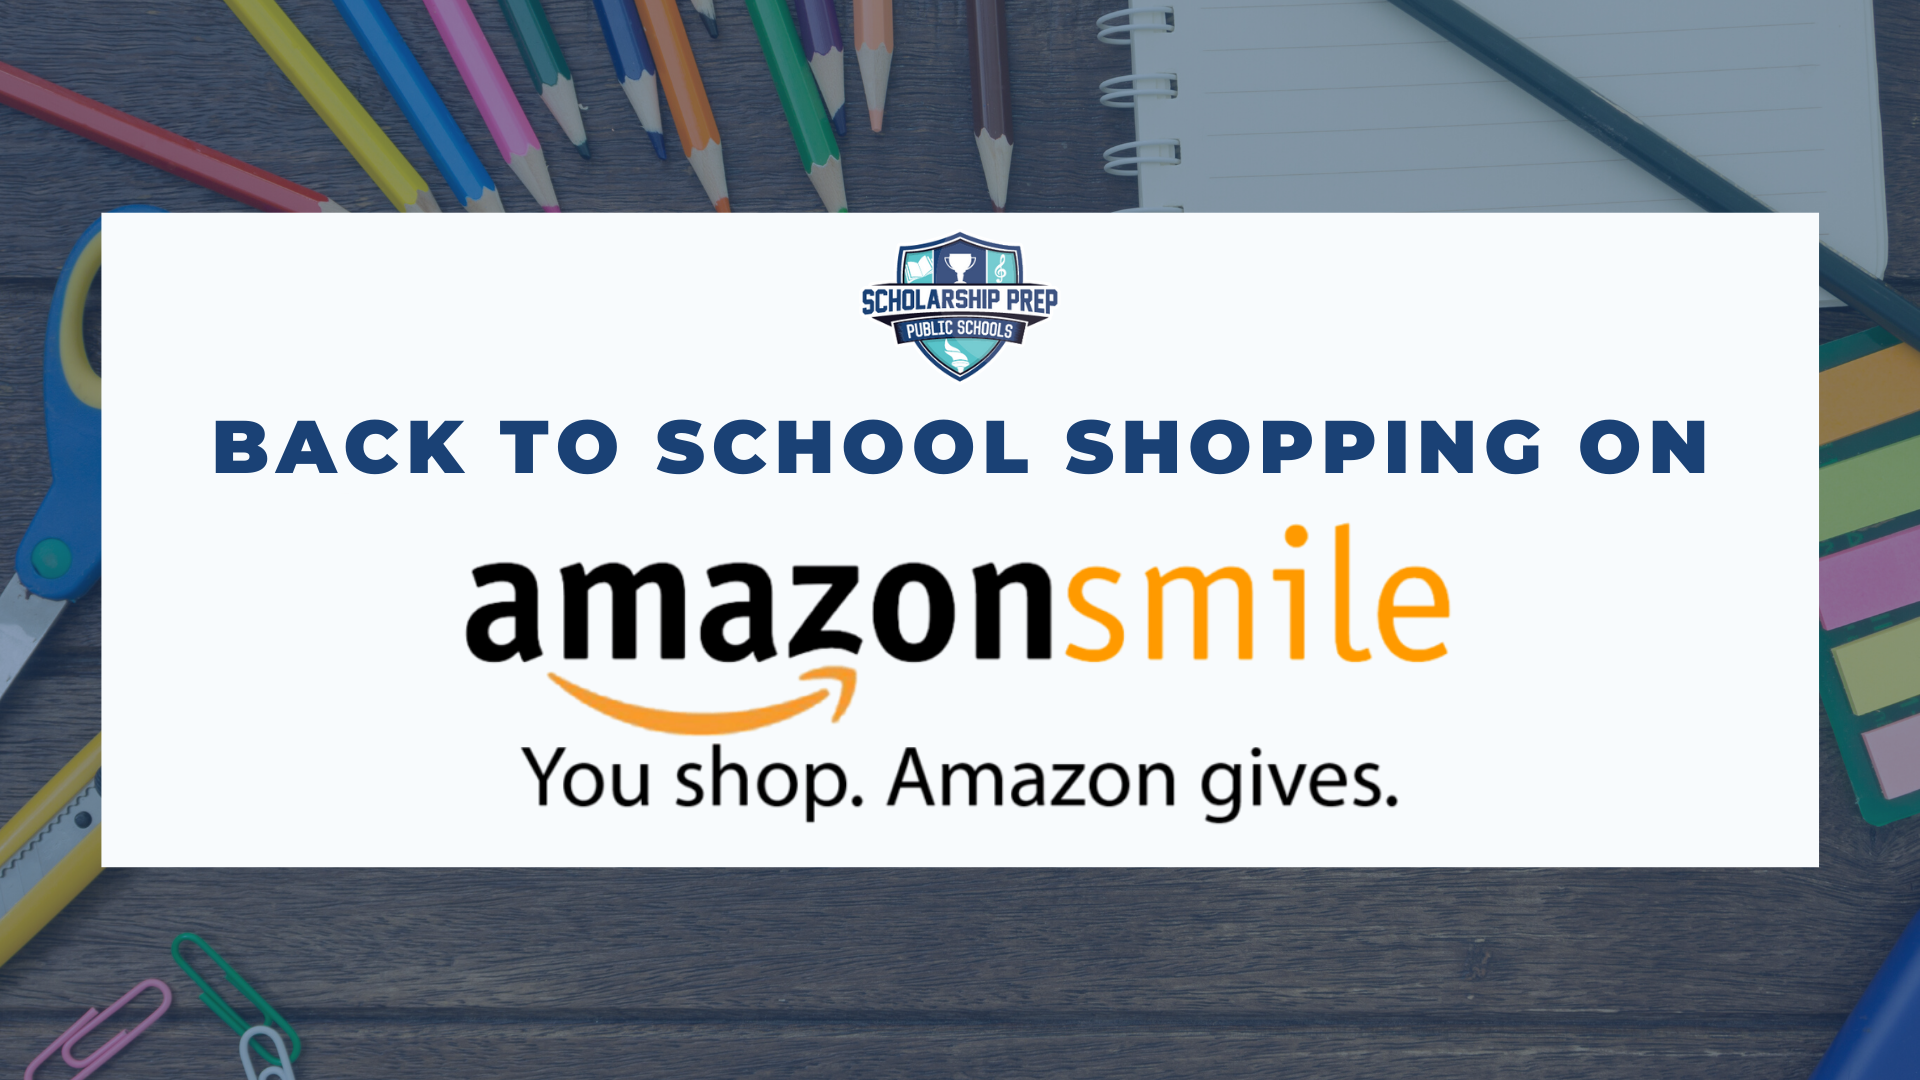 Back to School Shopping Through Amazon Smile